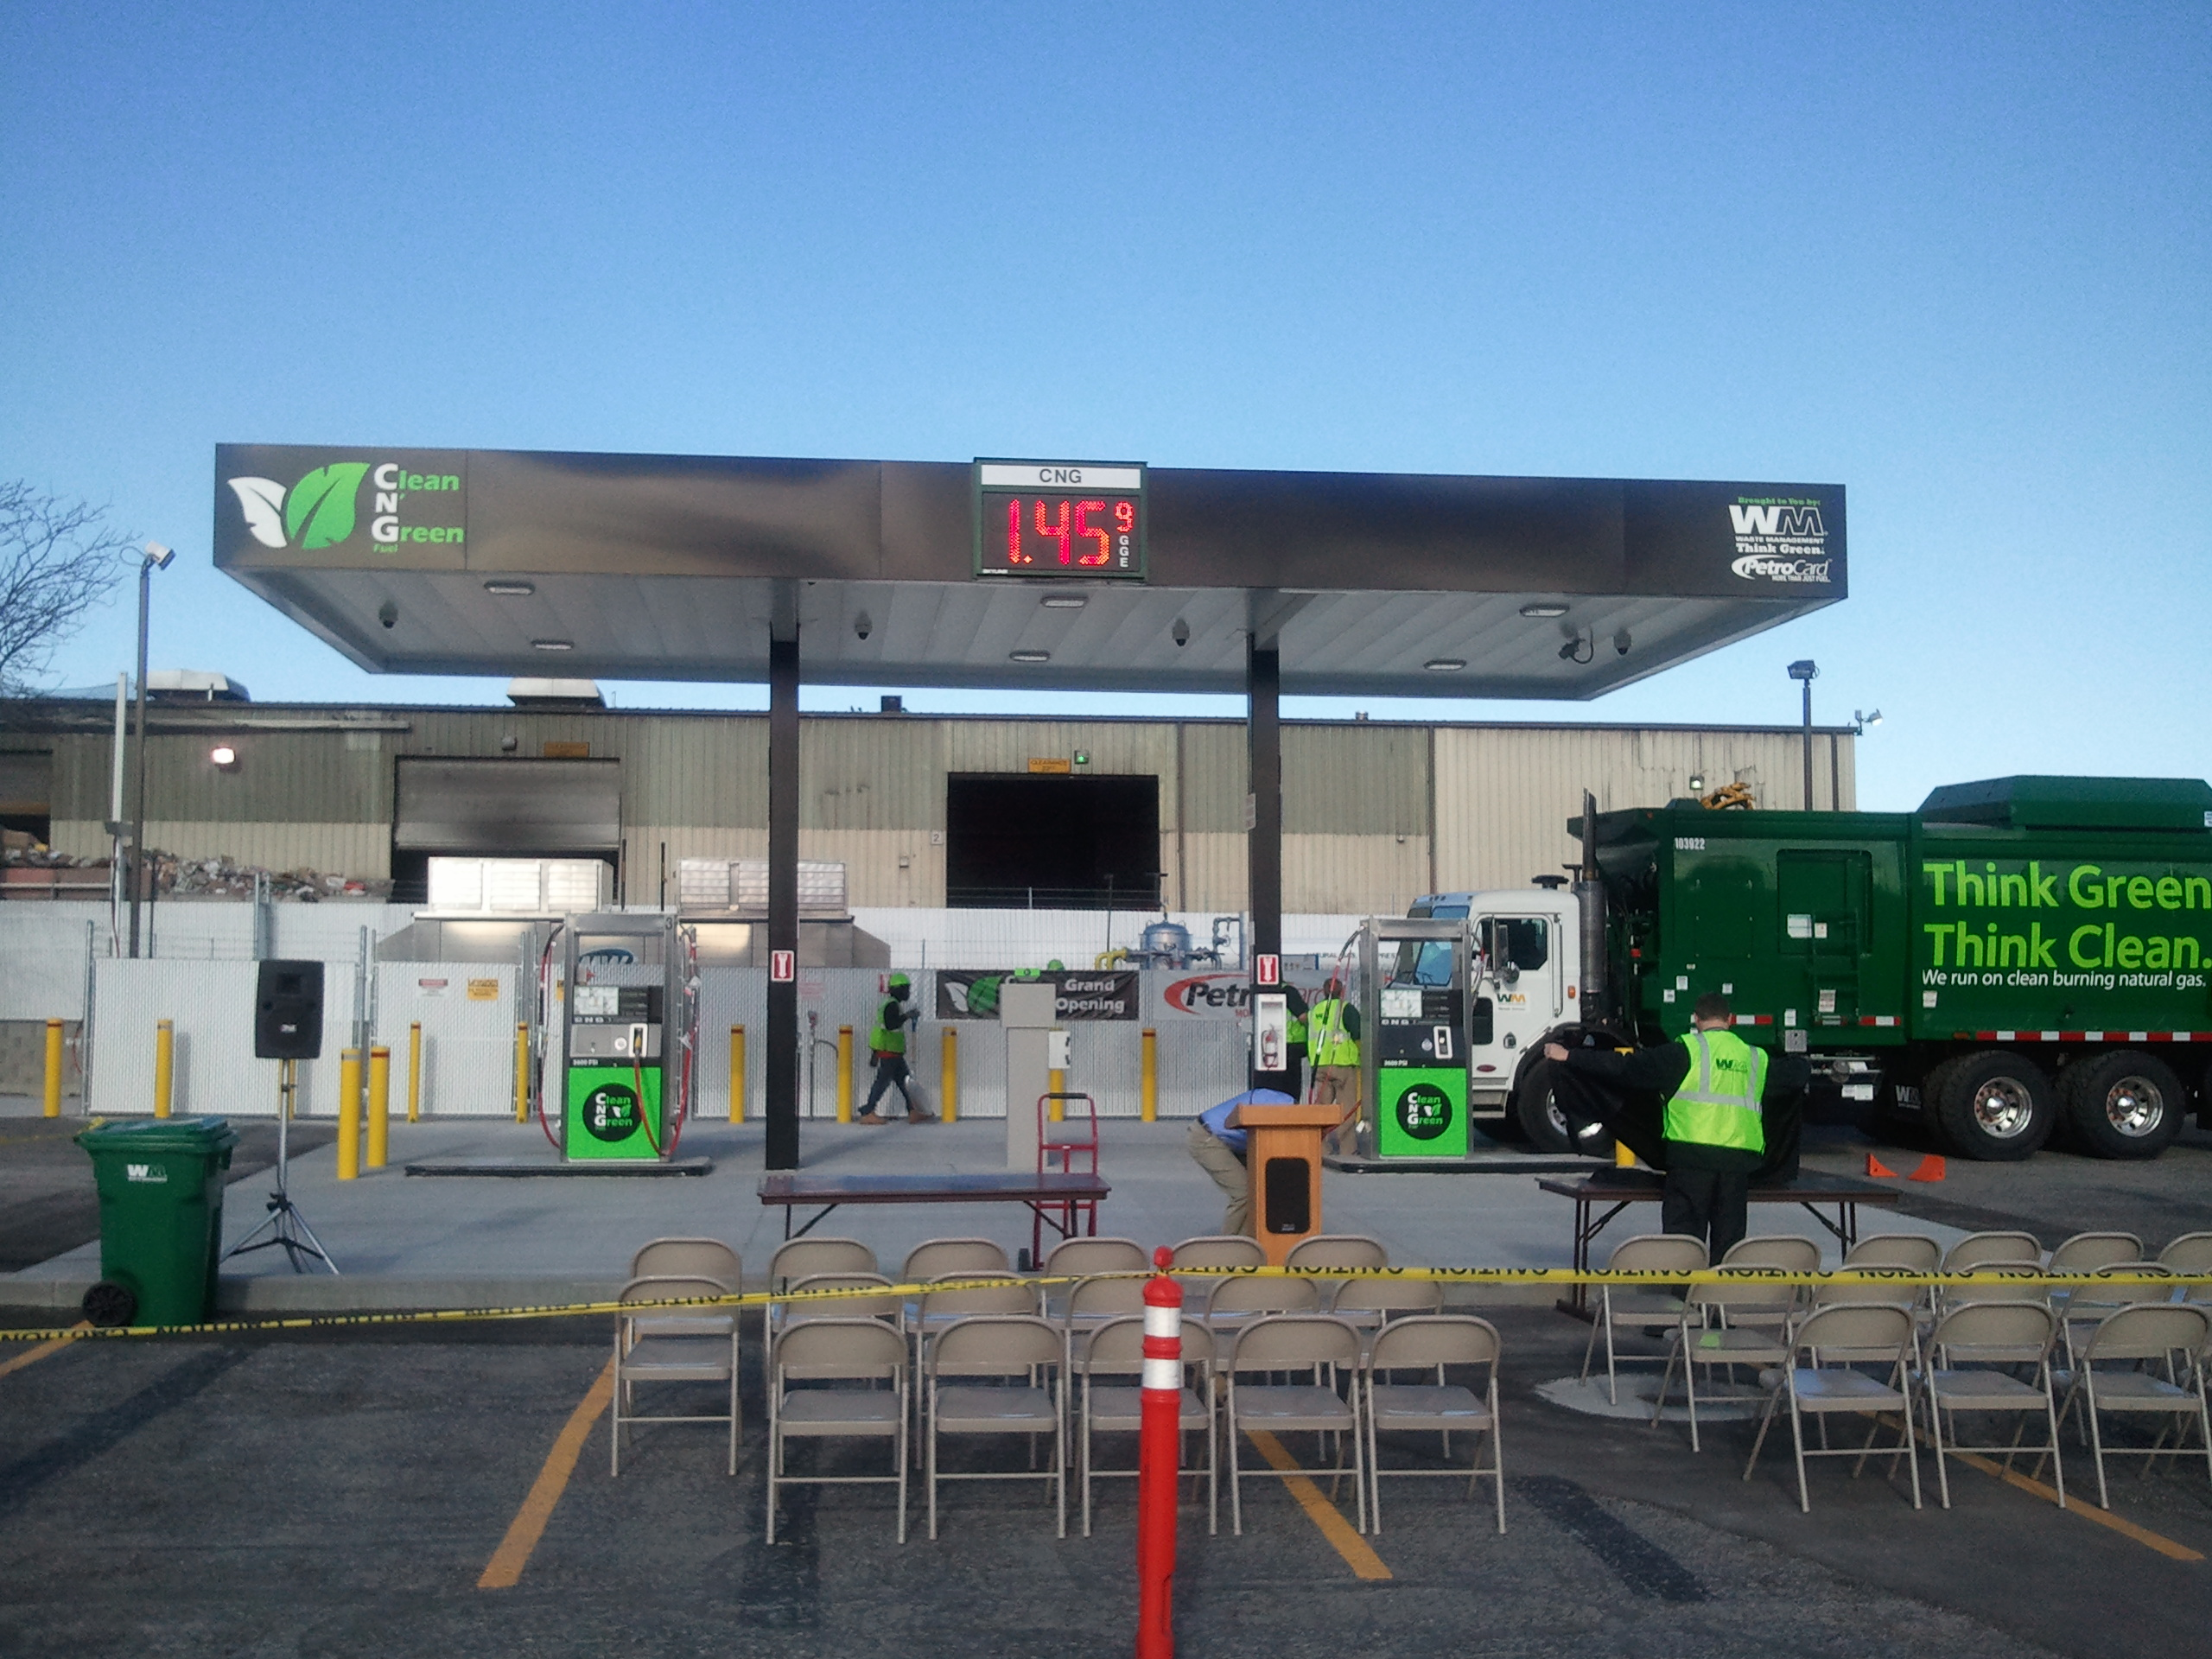 Cng Stations Utah Map.Utah Stations Clean N Green Fuel